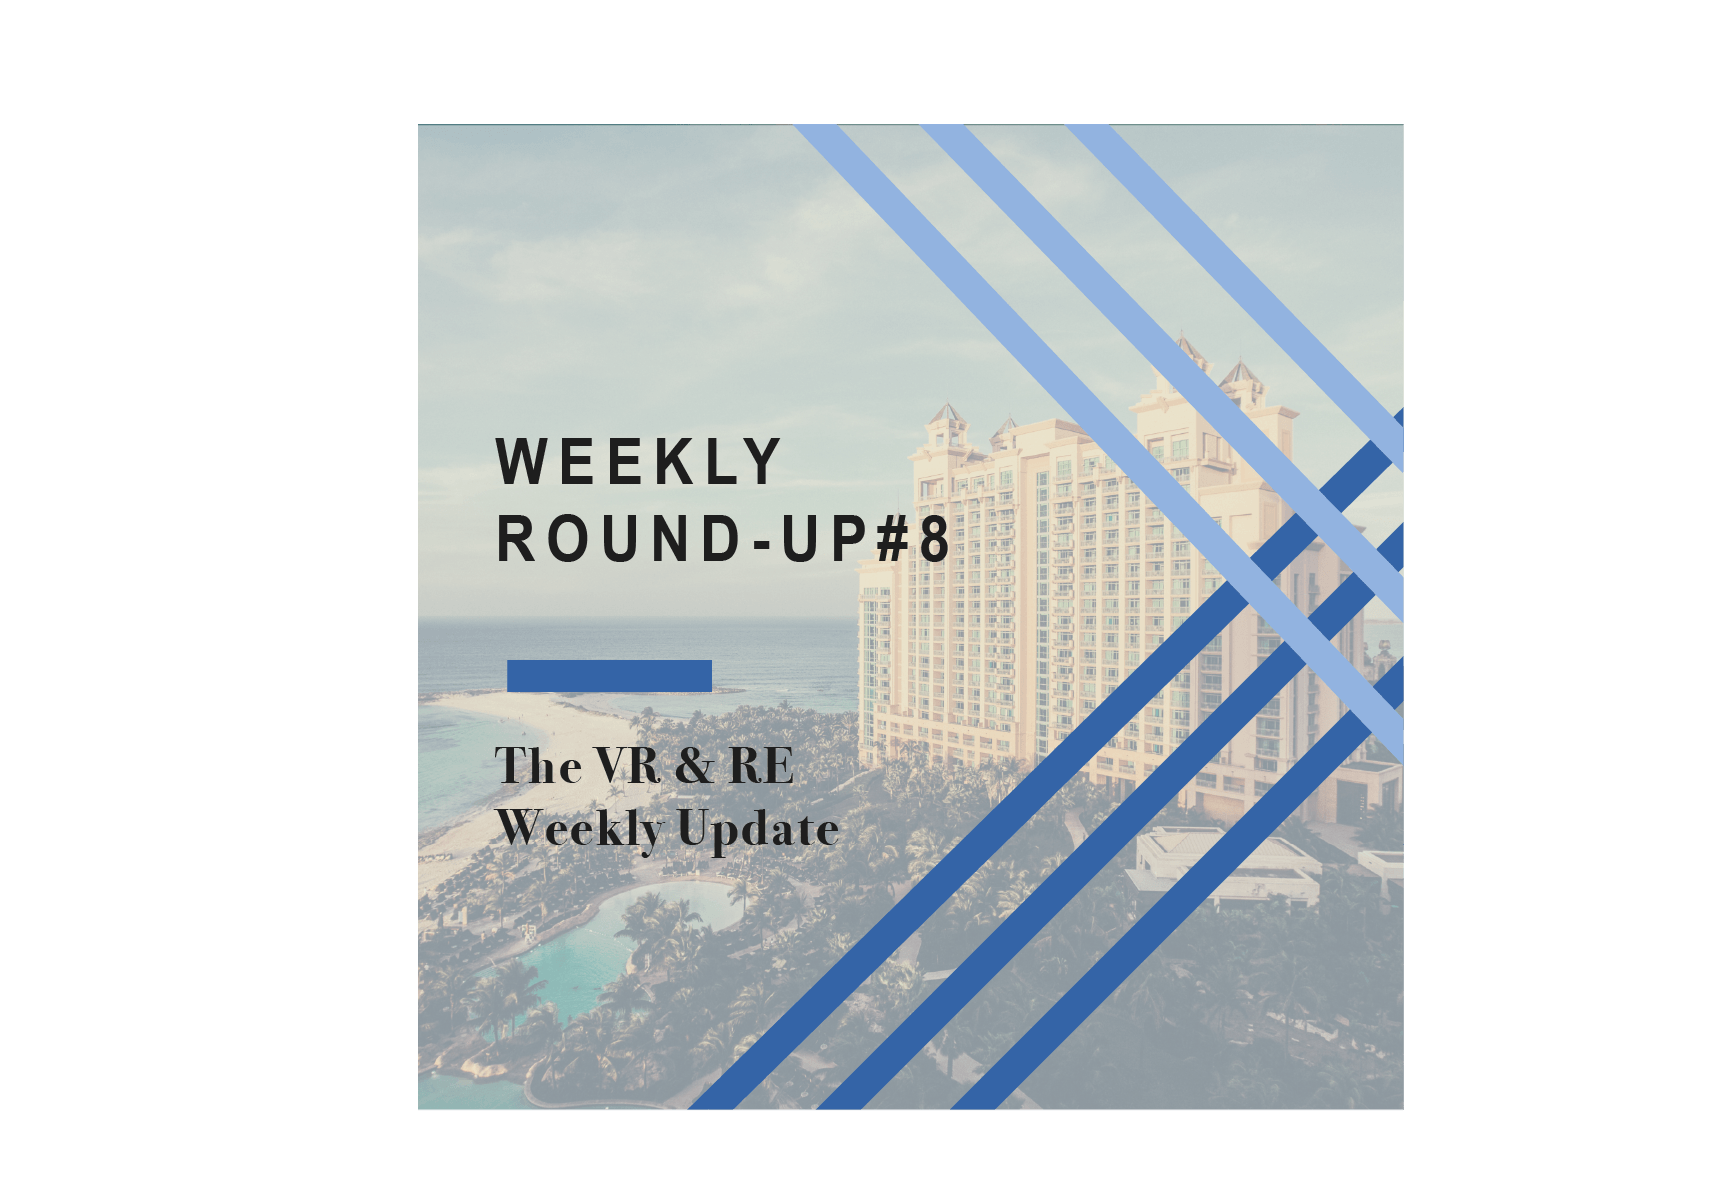 Weekly Round-Up #8